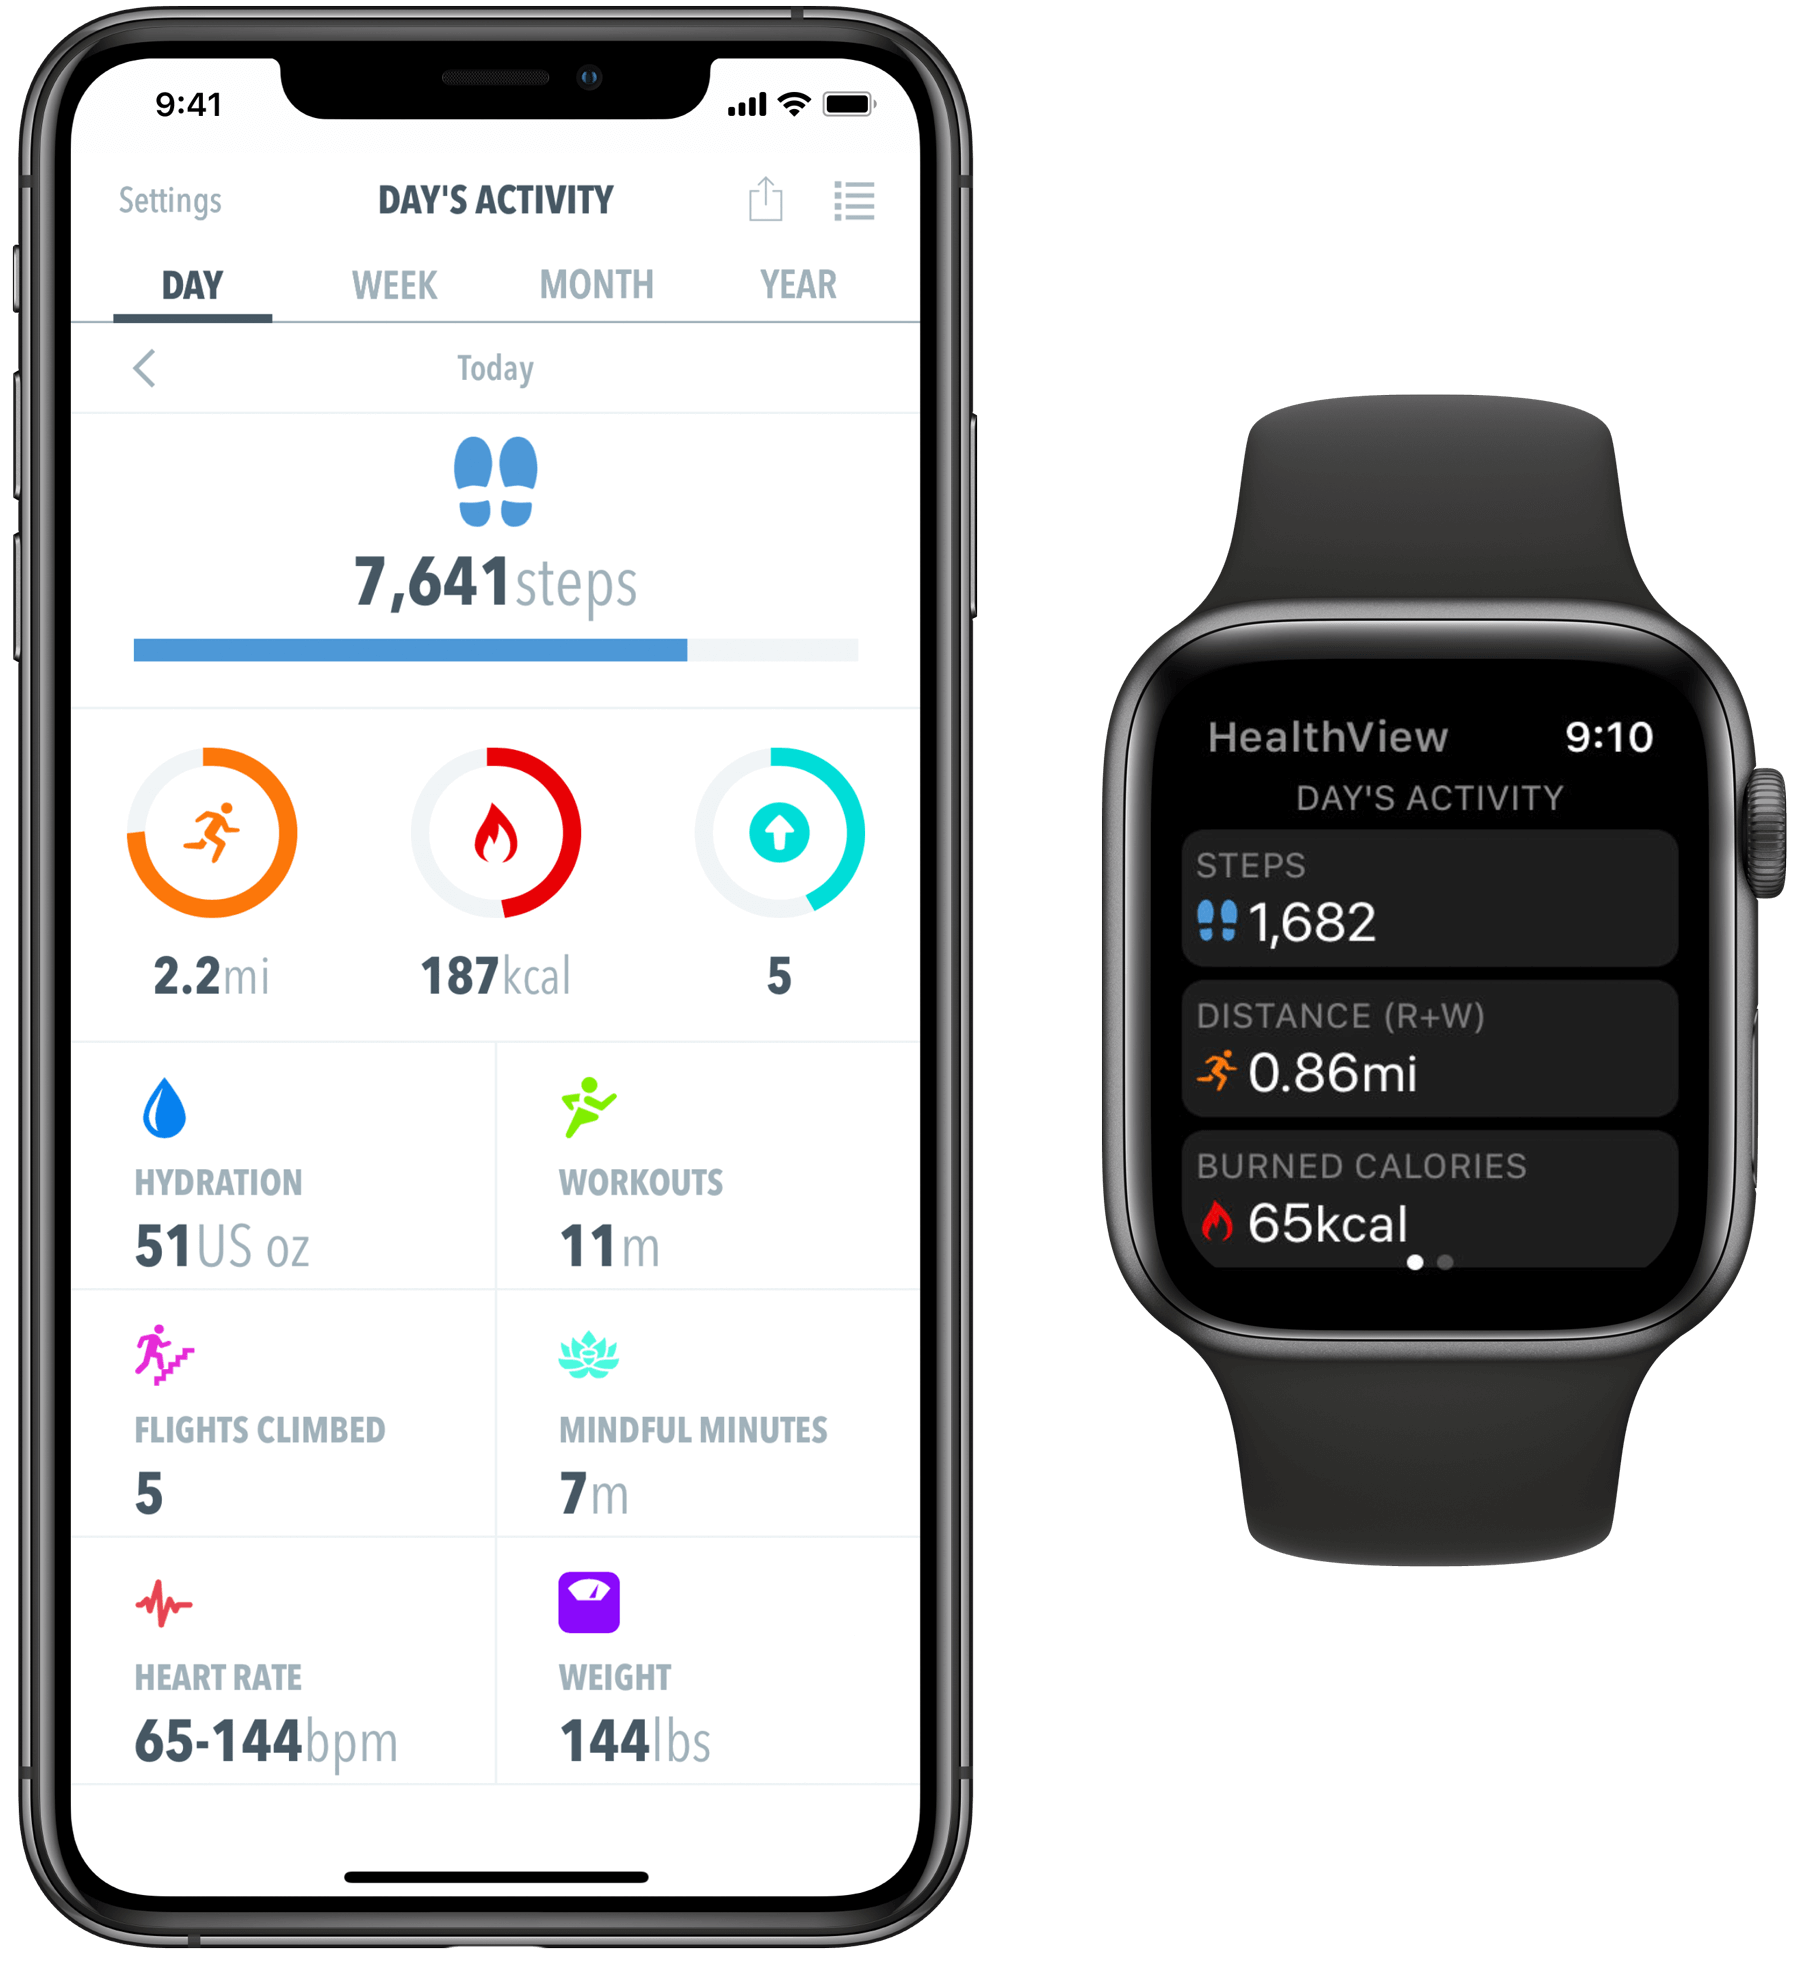 HealthView - Apple Health dashboard